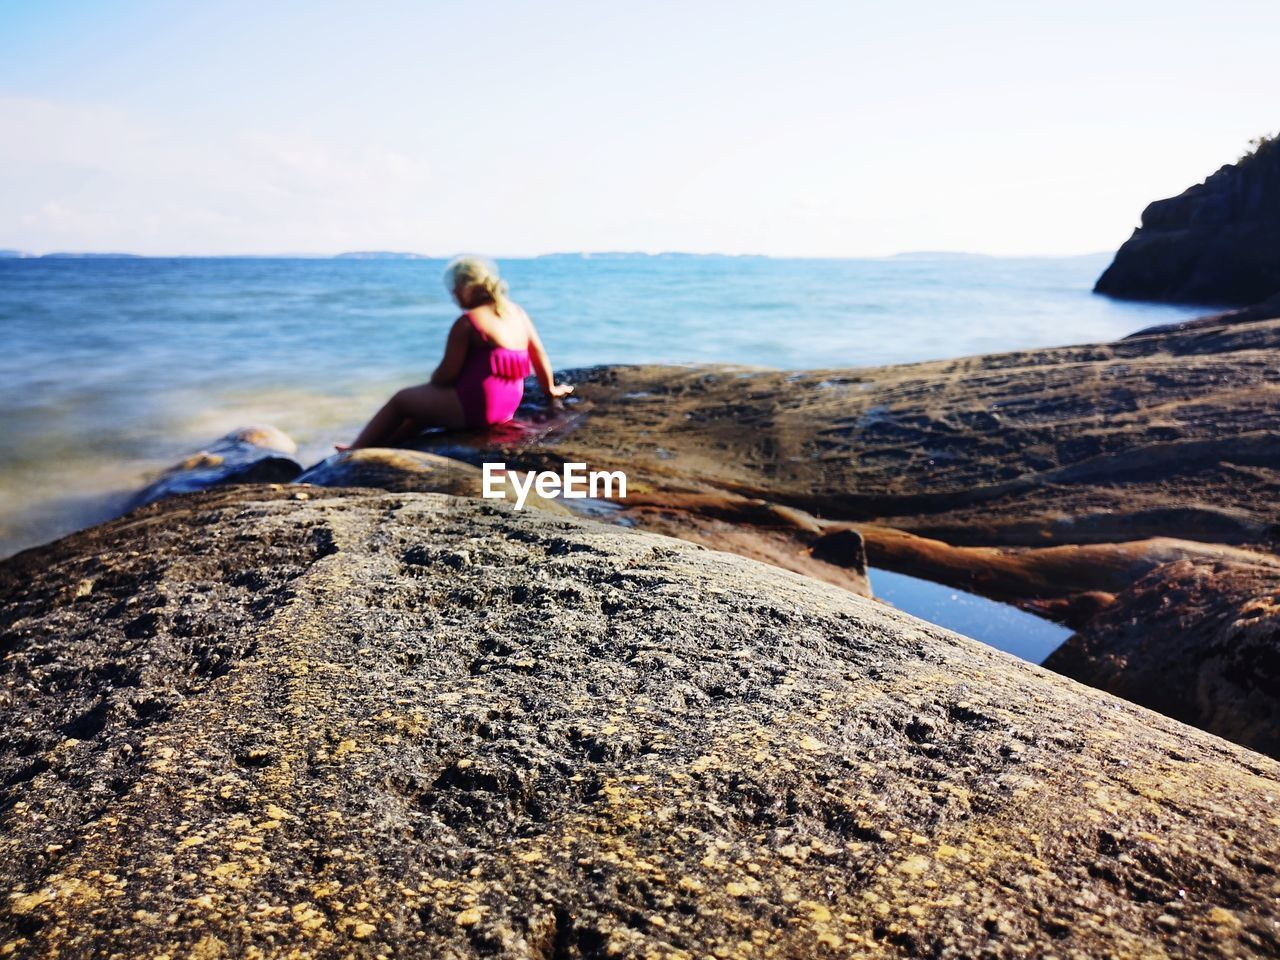 water, sea, rock, sky, rock - object, solid, real people, beauty in nature, lifestyles, leisure activity, nature, beach, one person, sitting, land, horizon, scenics - nature, day, women, horizon over water, outdoors